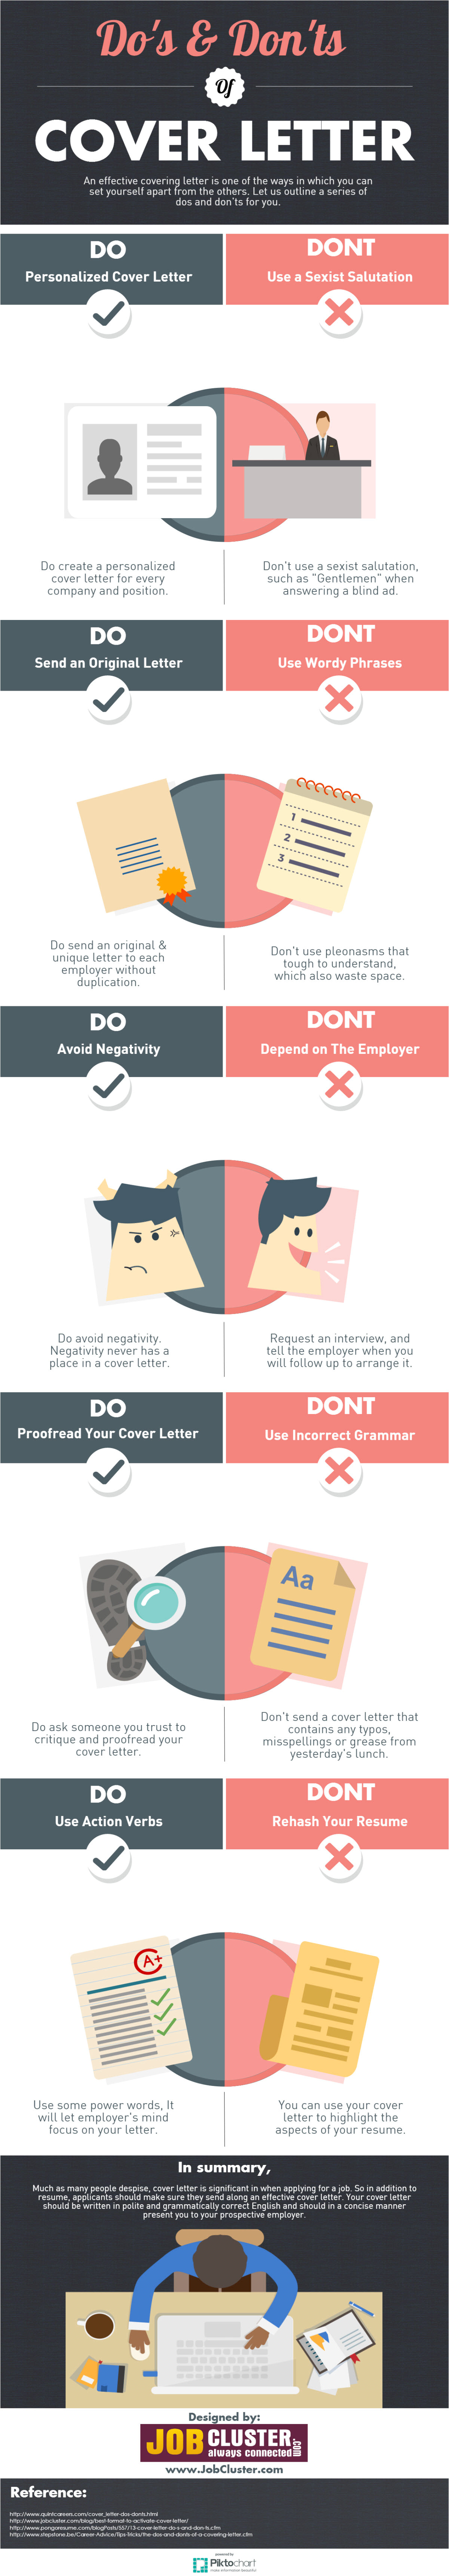 Dos and Don Ts Of Cover Letters Cover Letter Do 39 S and Don 39 Ts for Job Seekers Infographic